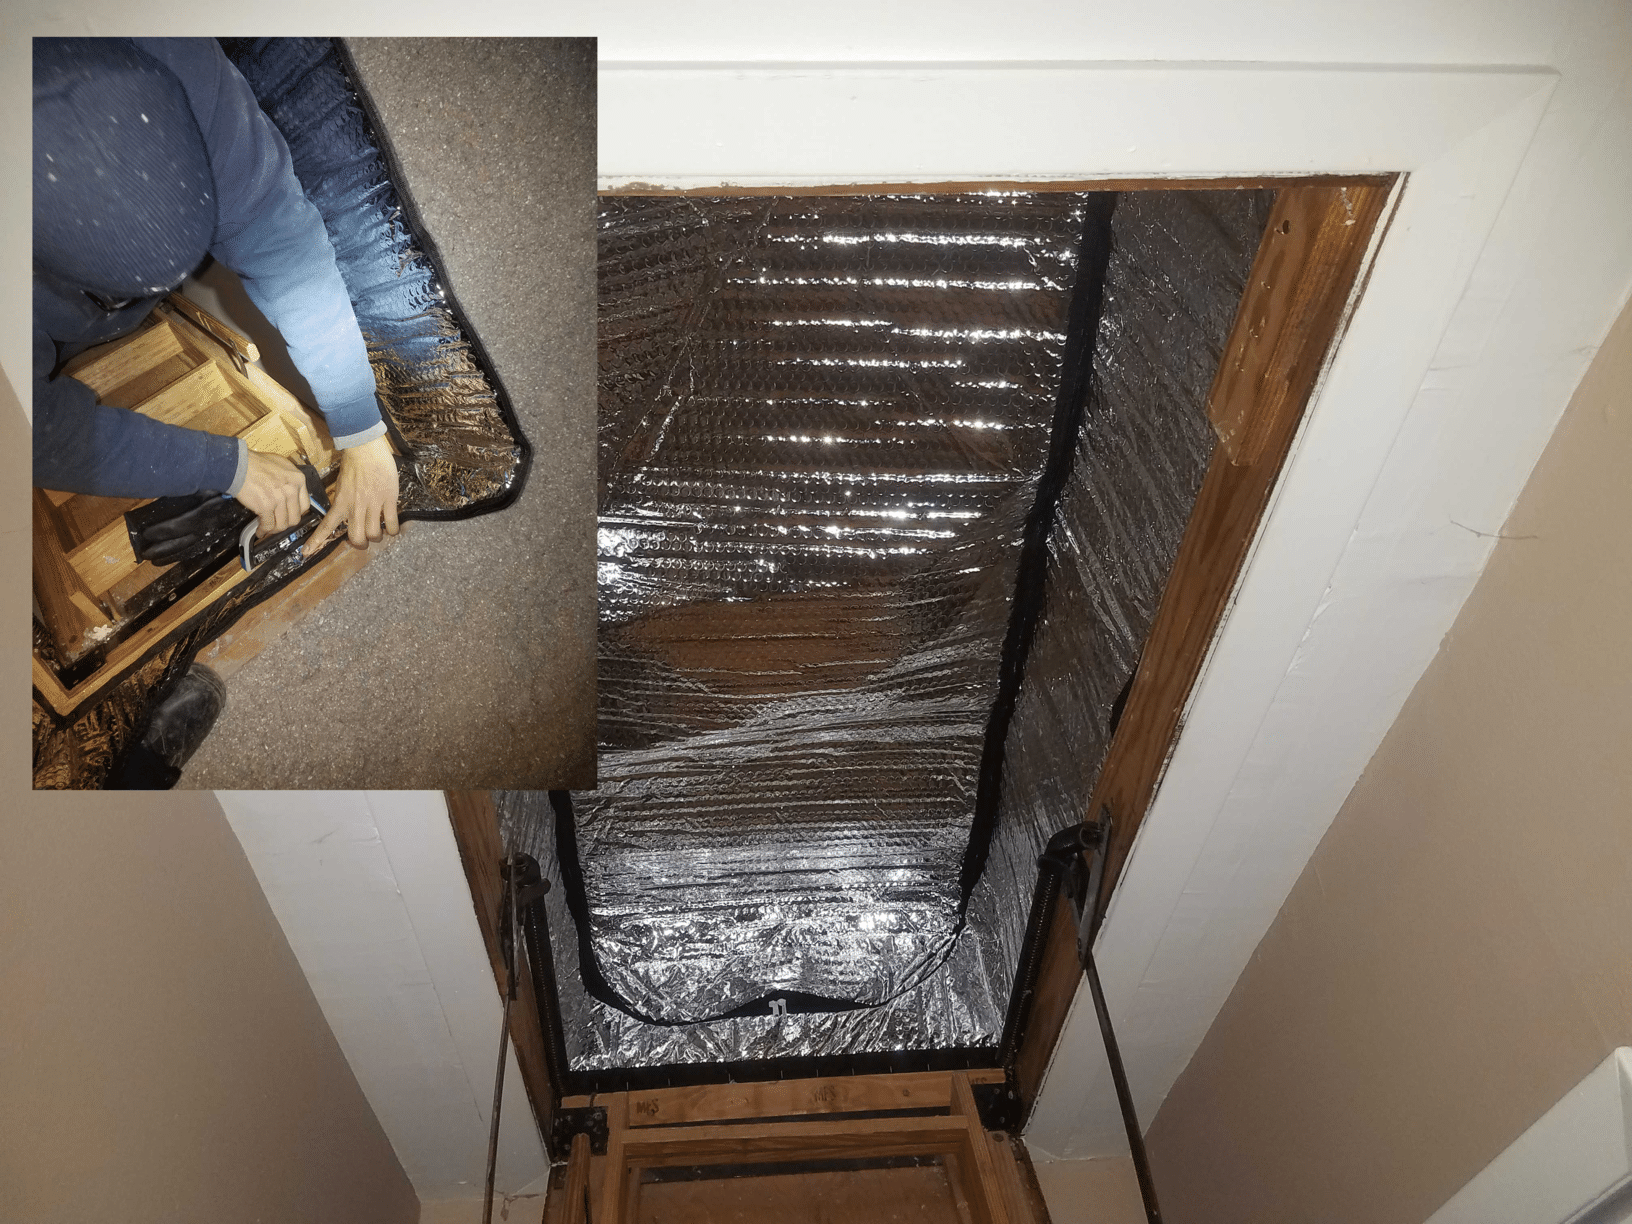 Attic Cover Provides Insulation in Woodbridge, NJ - After Photo